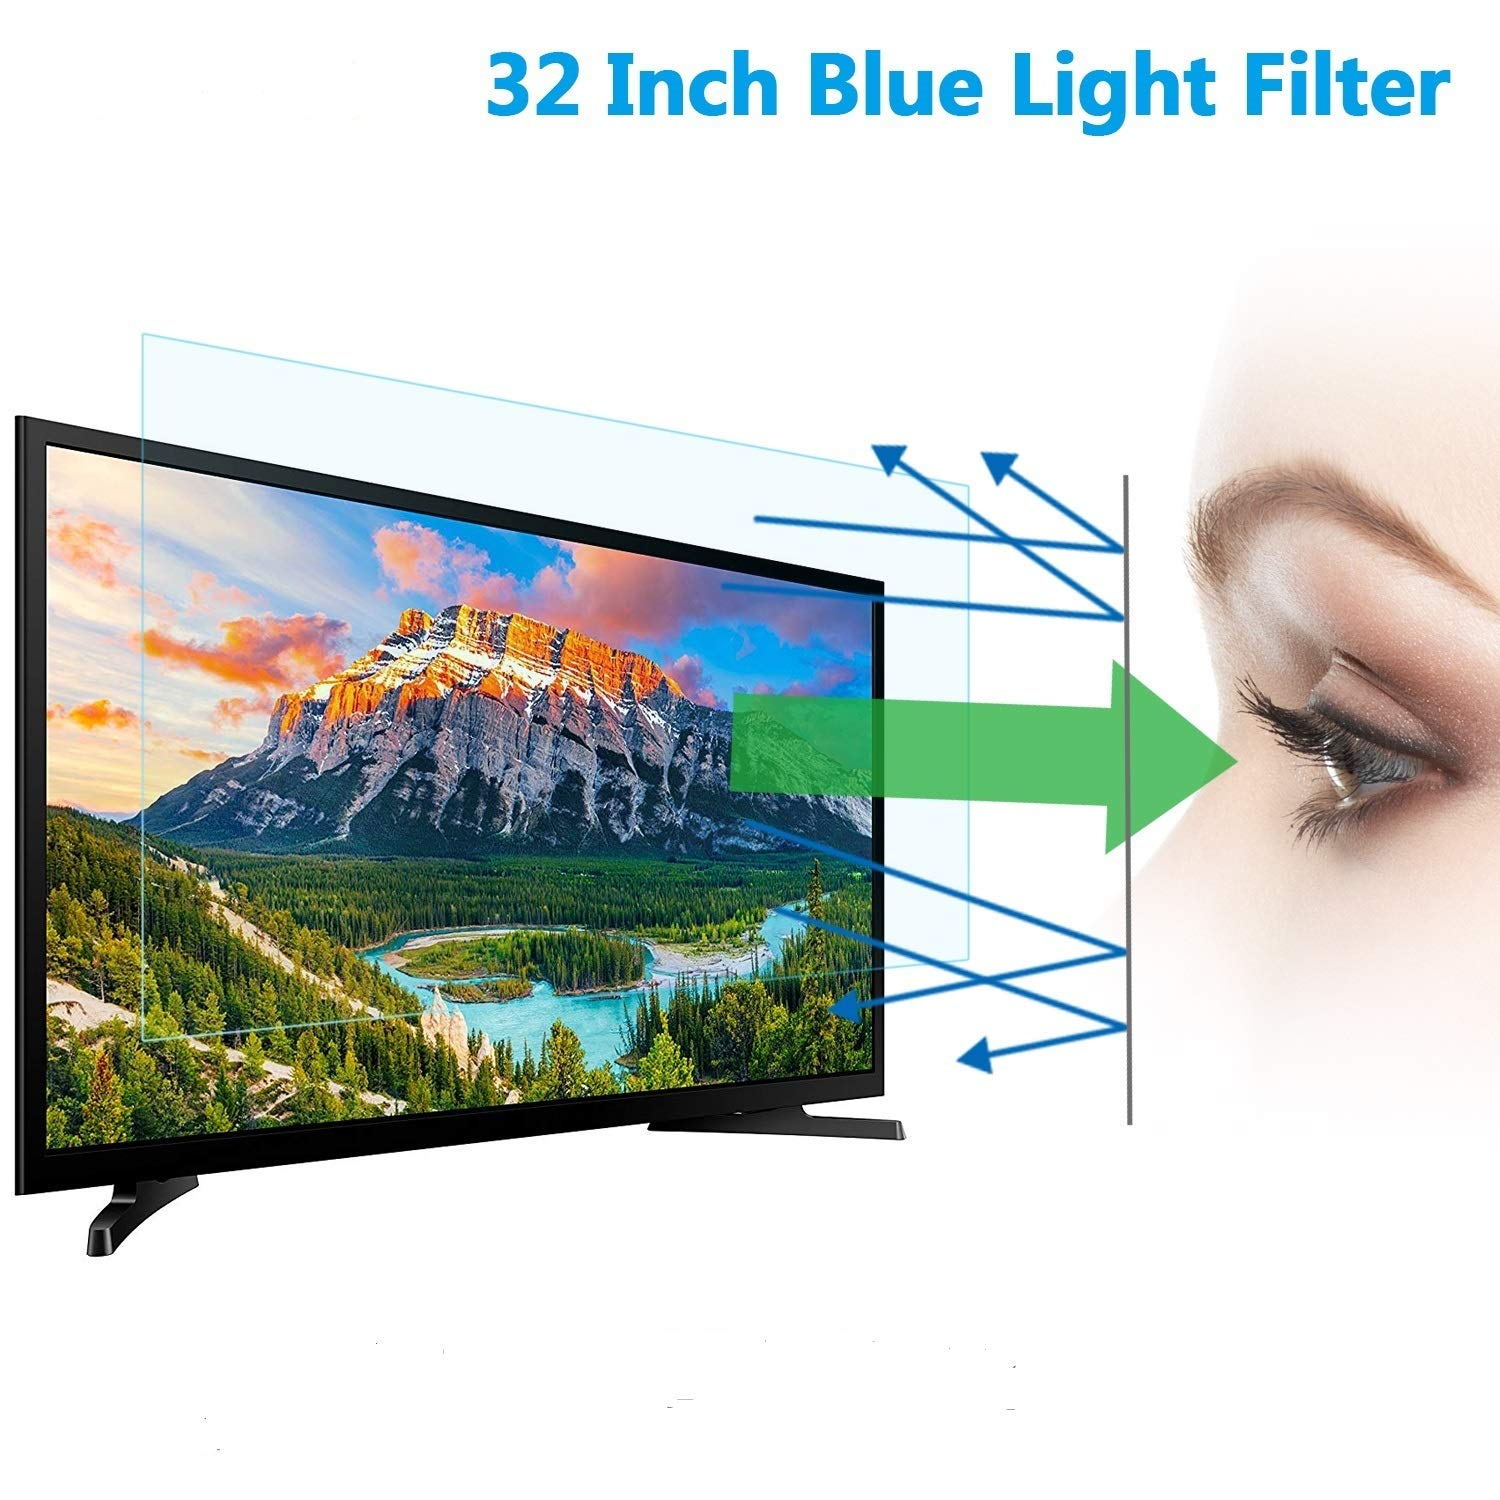 32'' TV Blue Light Screen Protector, Eye Protection Blue Light Protector Blocks Reduce Eye Fatigue and Eye Strain for 32'' LCD, LED, OLED & QLED 4K HDTV by LILIONGTH